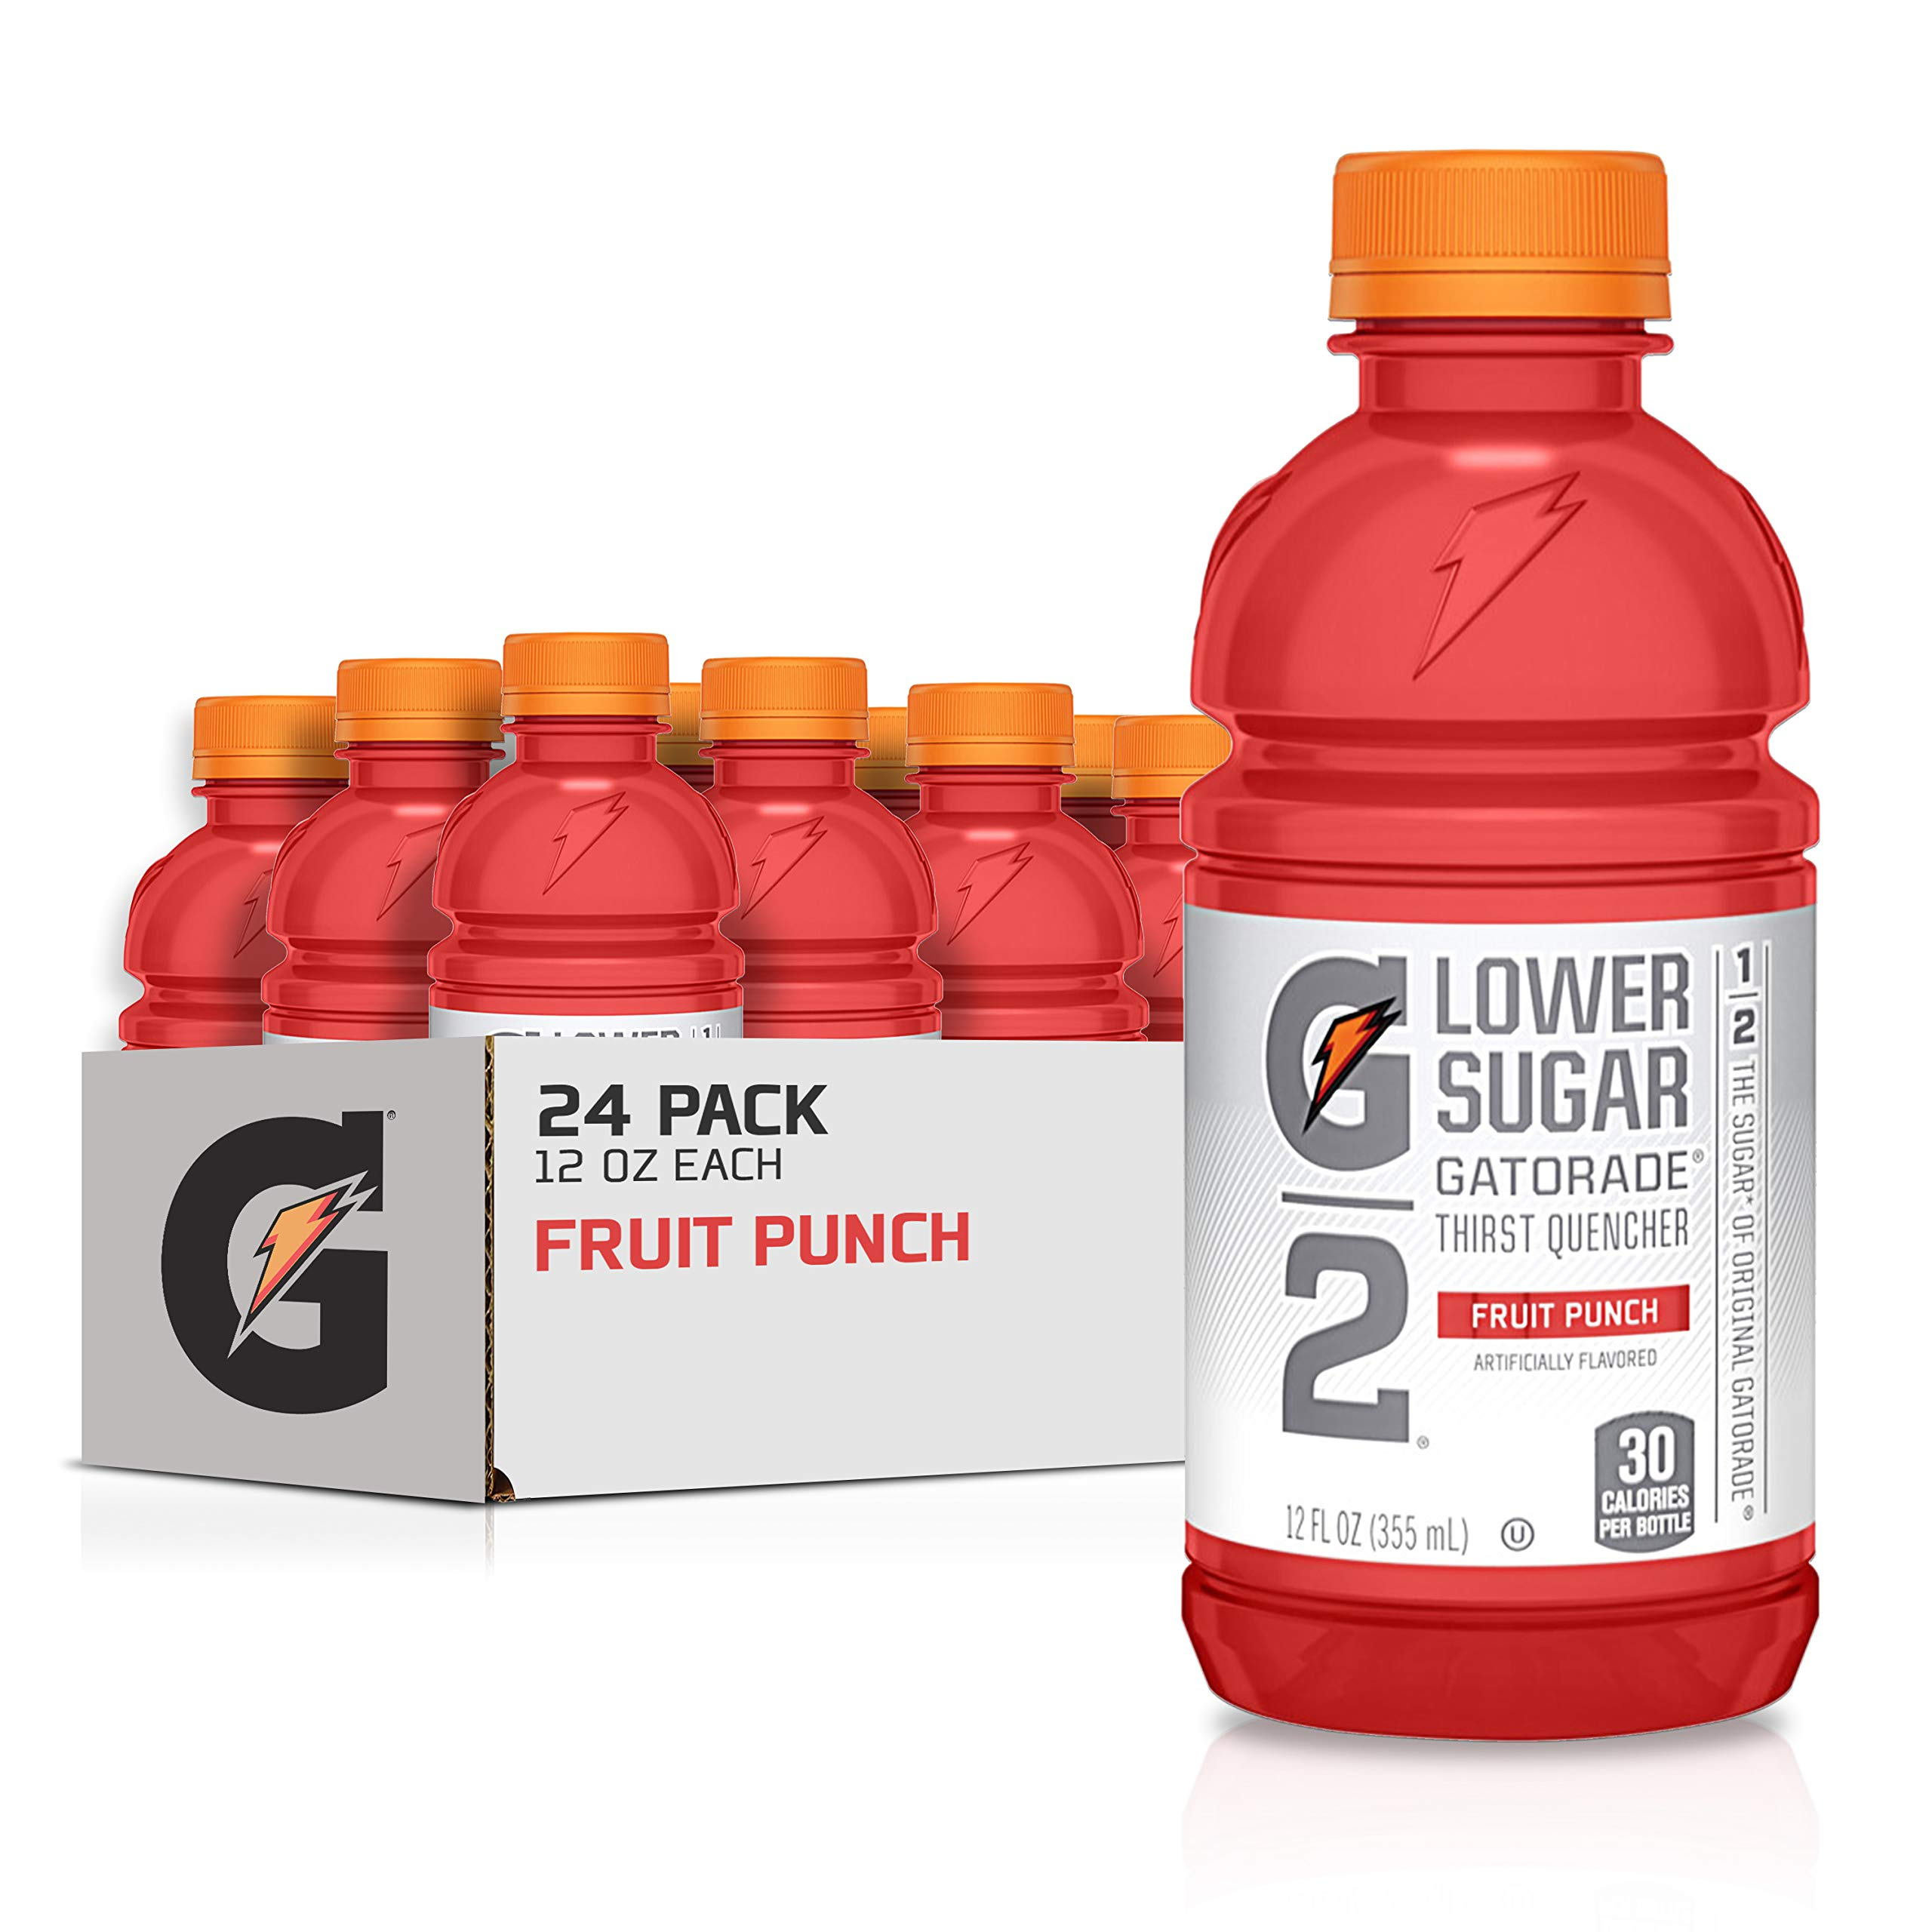 Gatorade G2 Thirst Quencher, Lower Sugar, Fruit Punch, 12 Ounce Bottles (Pack of 24)